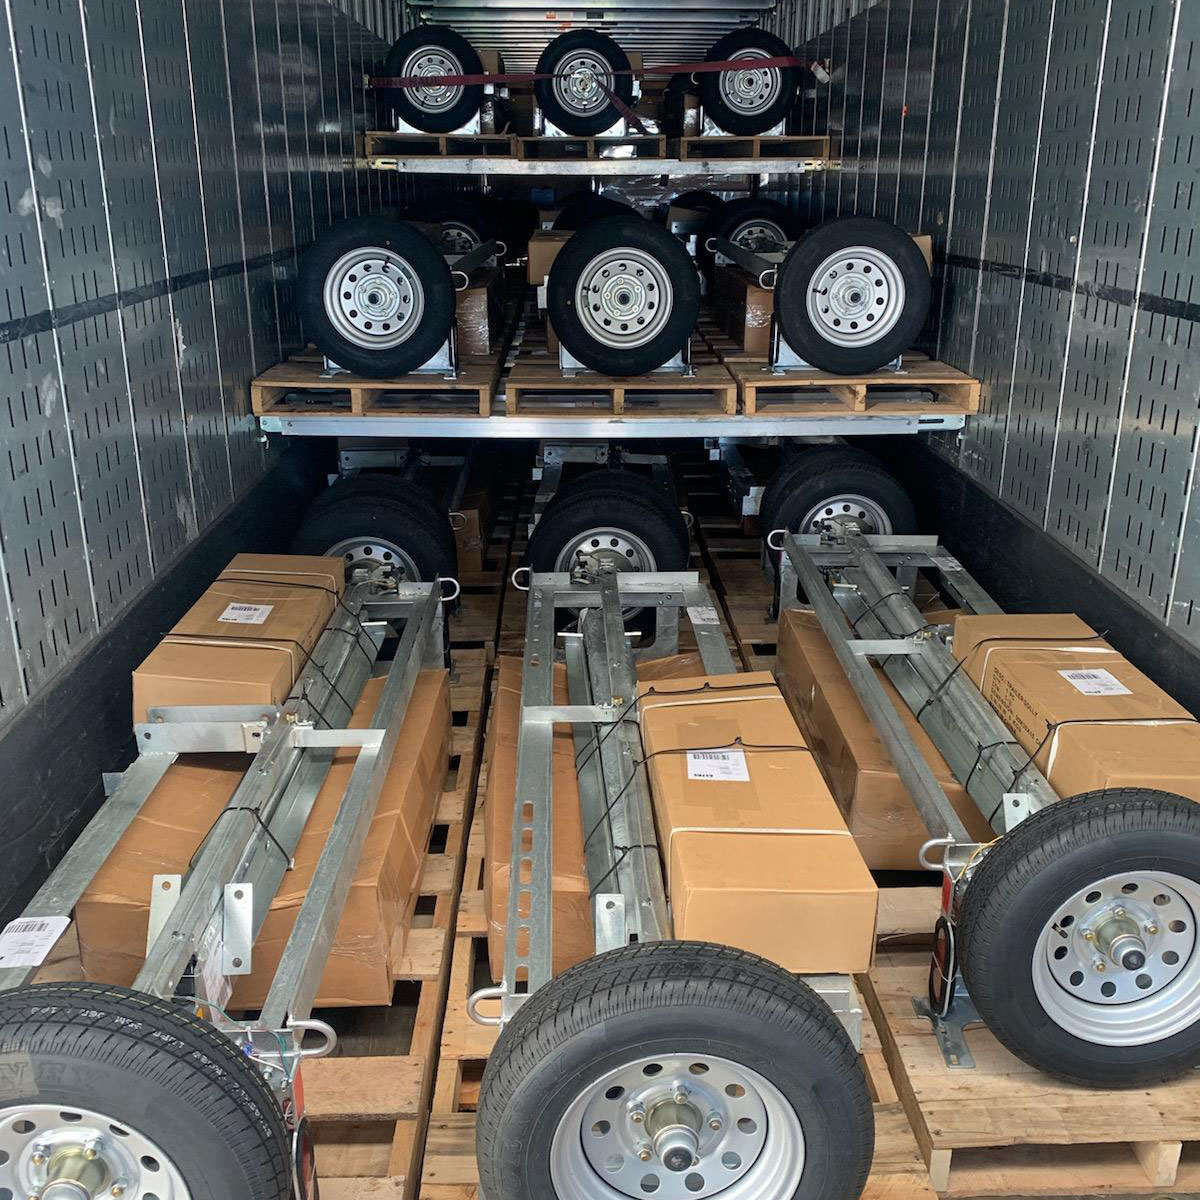 Why Buying a New Car Tow Dolly is Recommended over Buying Used